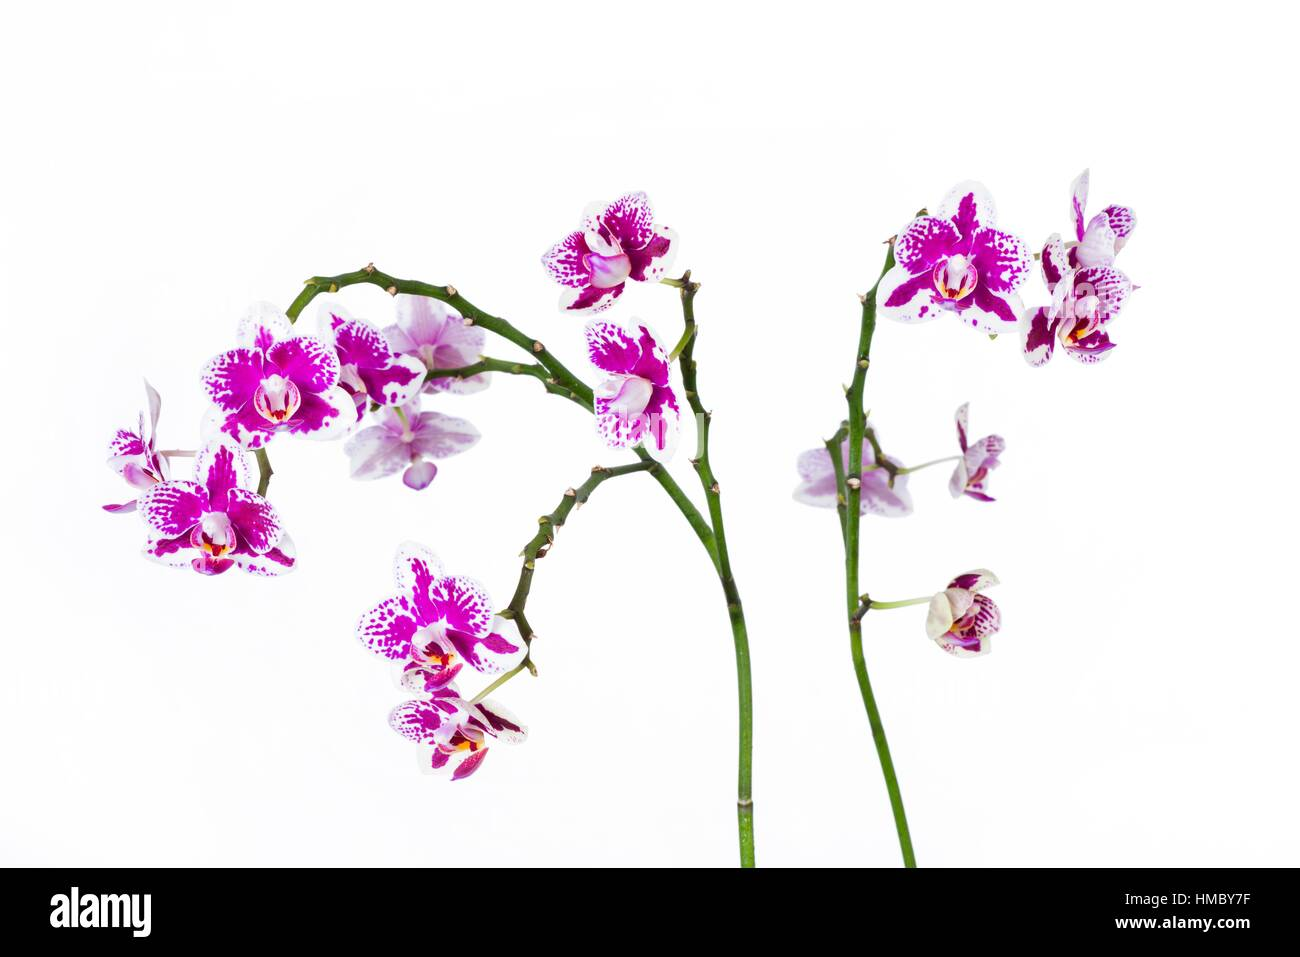 Purple orchid detail isolated on white backdrop. - Stock Image